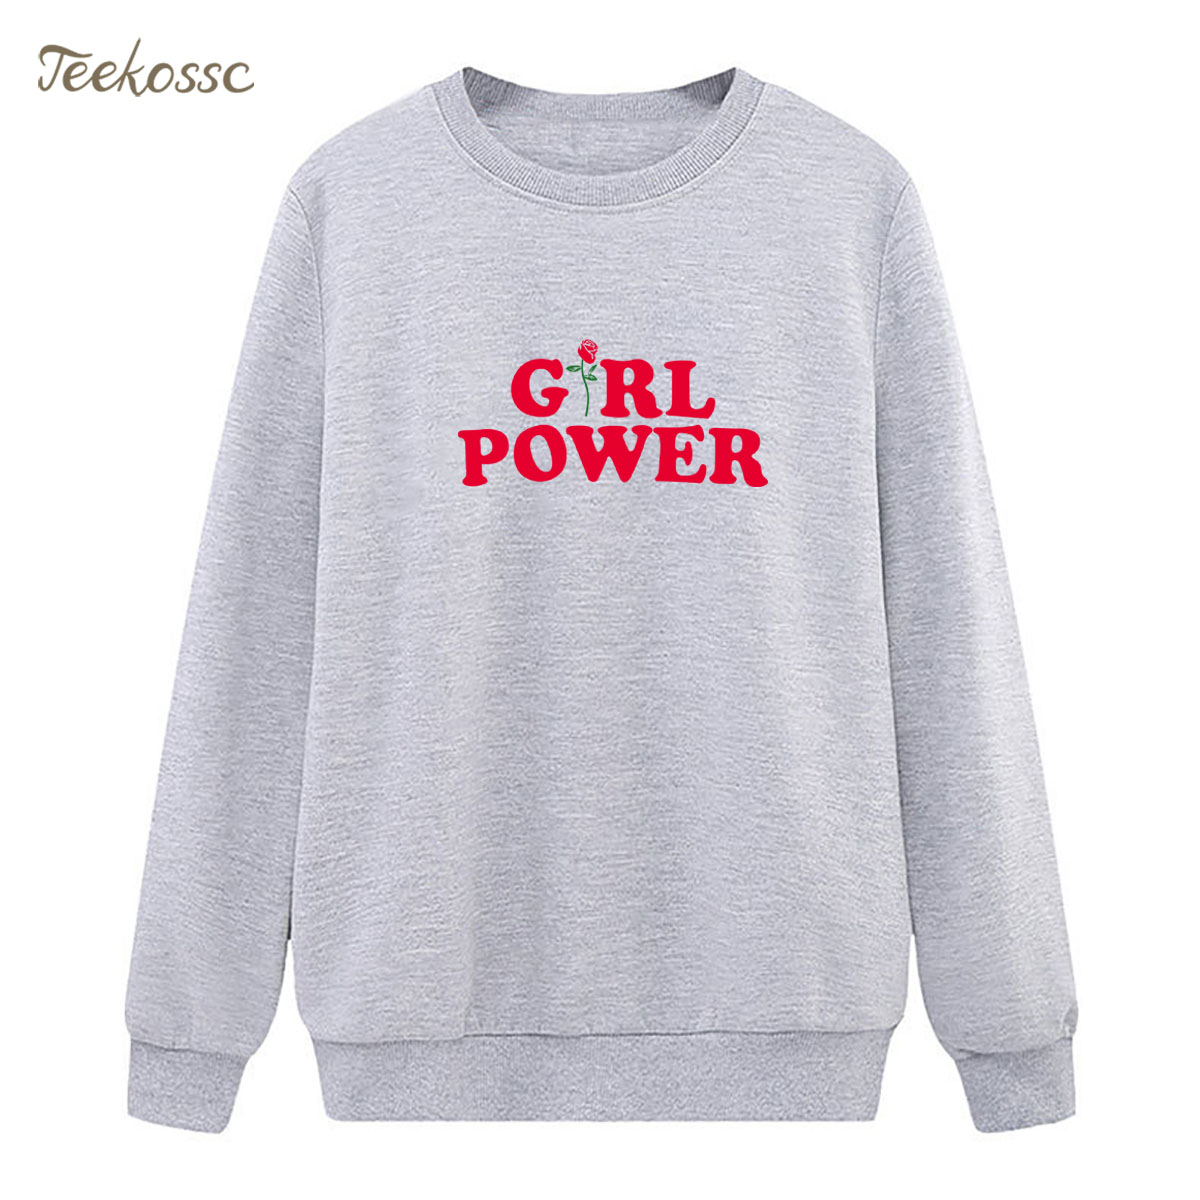 Girl Power Sweatshirt Hoodie 2018 New Brand Winter Autumn Women Lasdies Pullover Fleece Loose Streetwear Feminism Casual Hoody